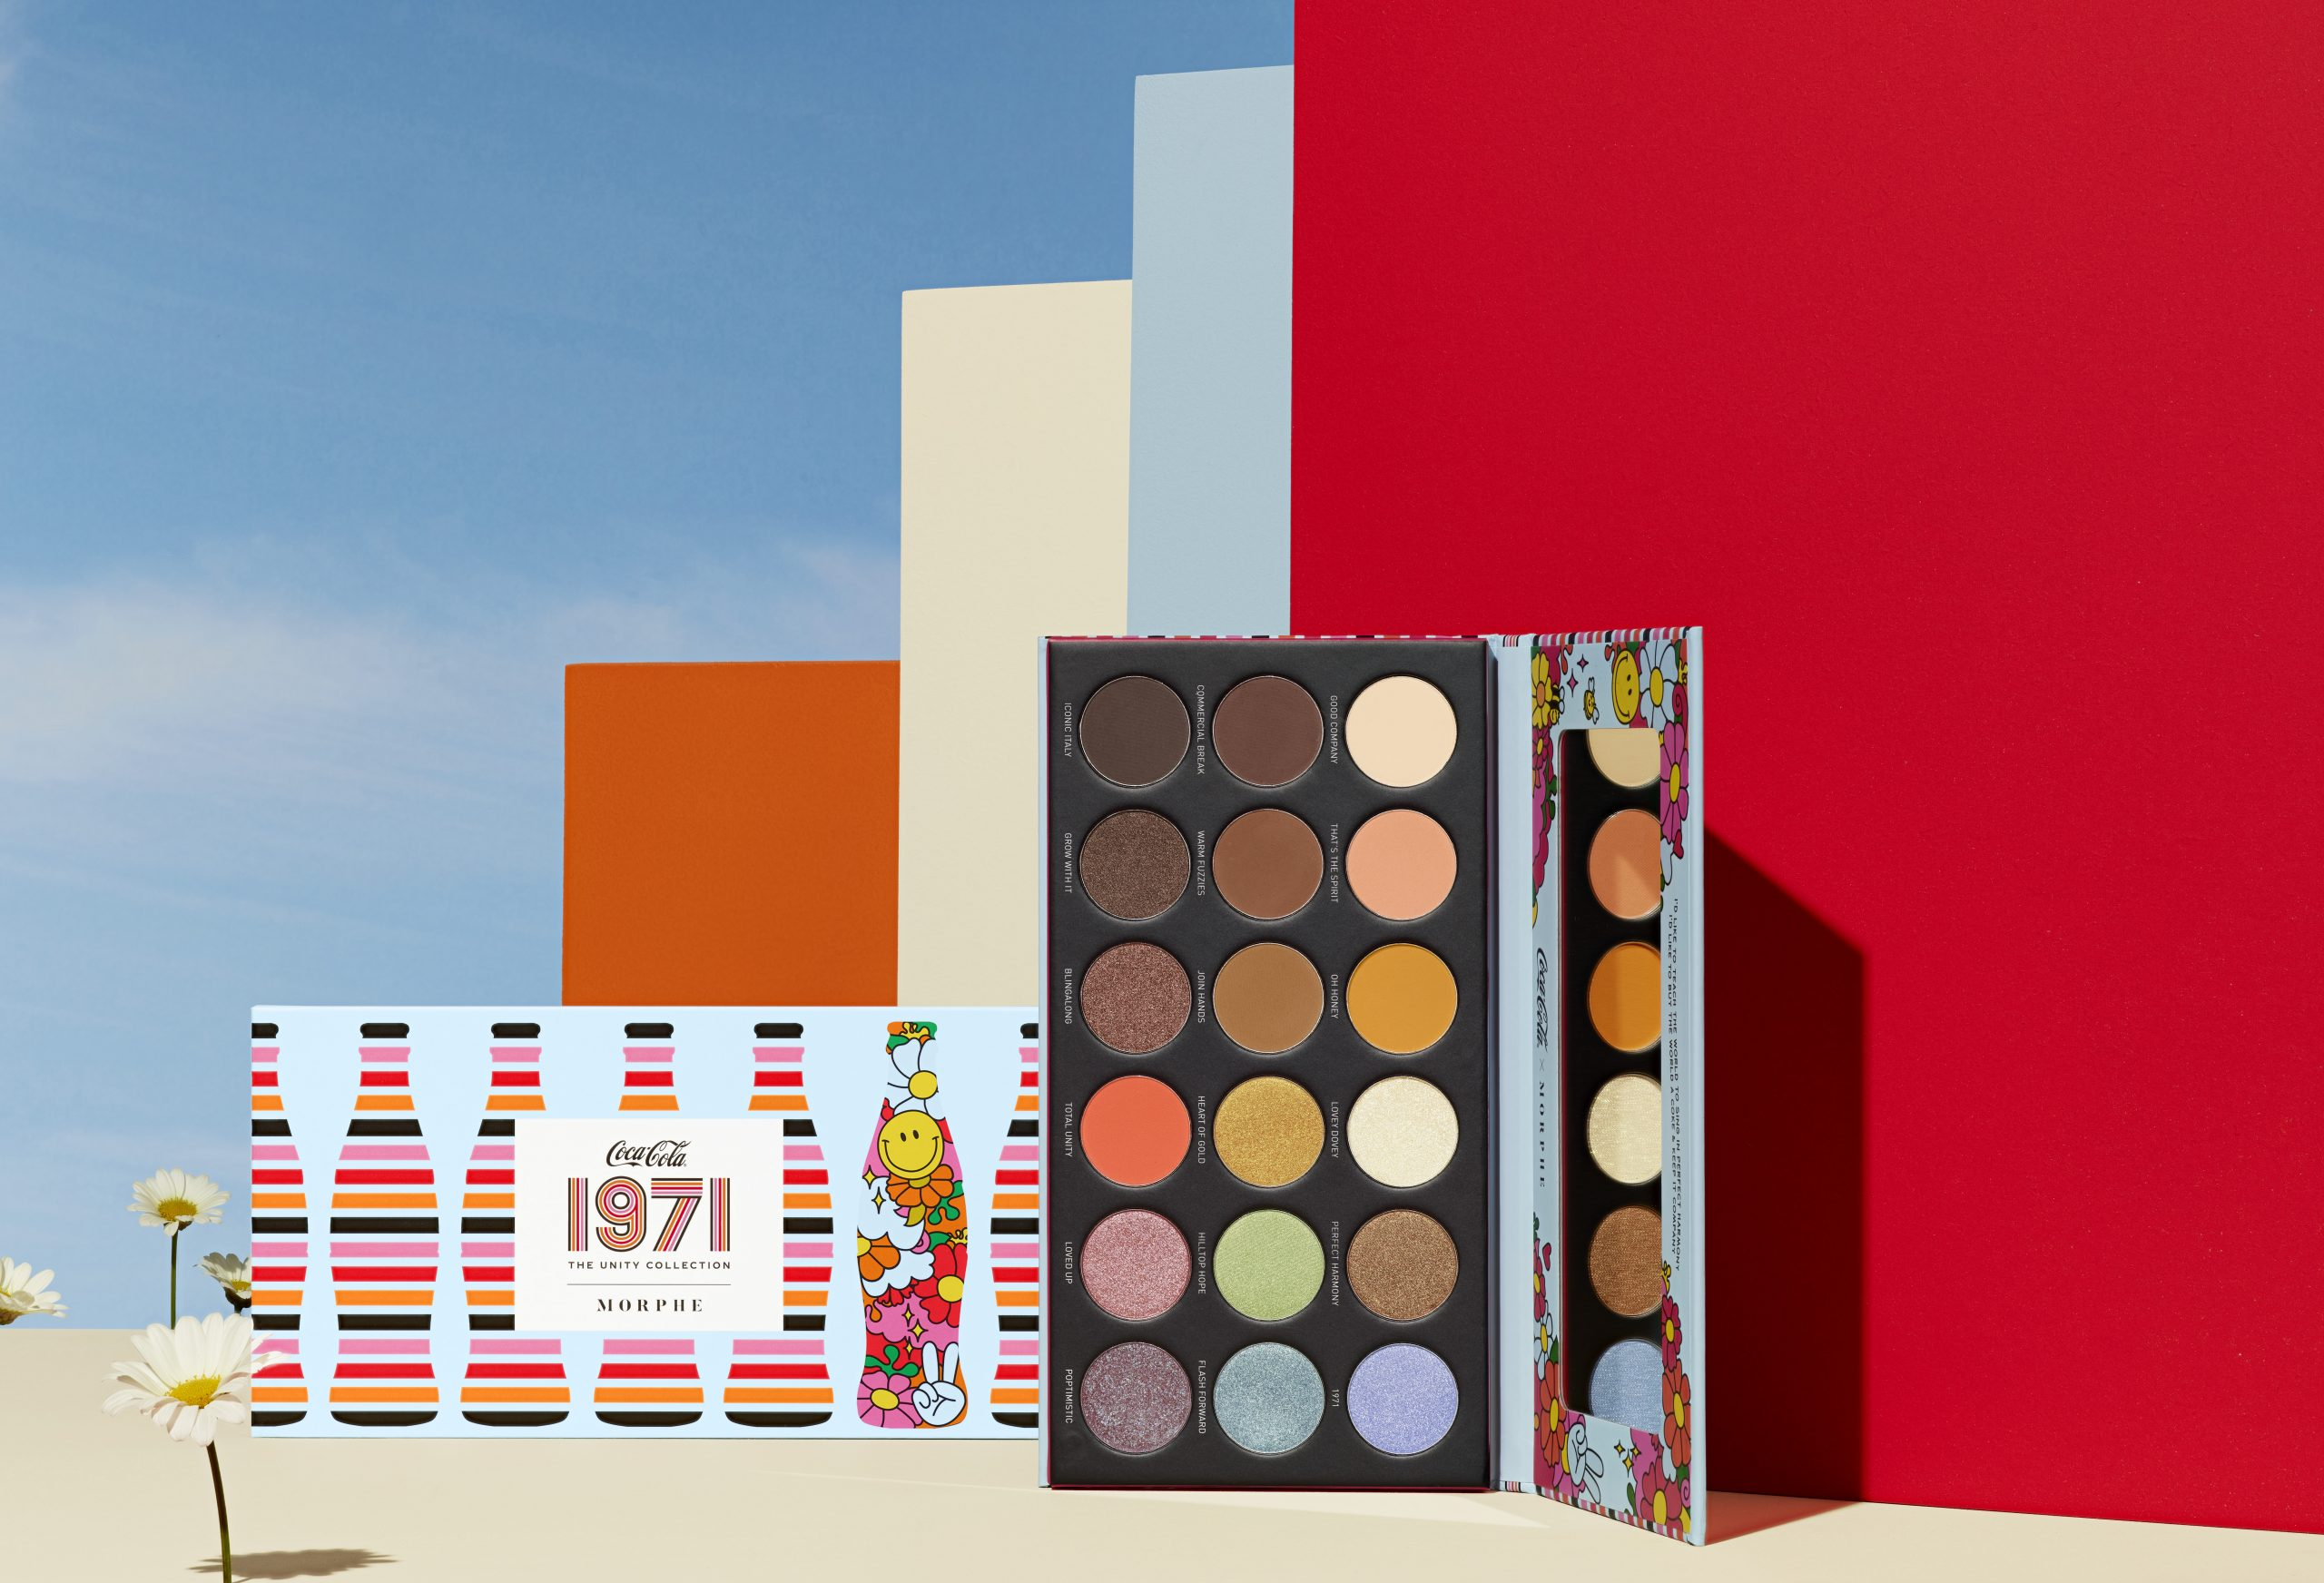 morphe-cosmetics-debuts-limited-edition-collection-based-on-iconic-1971-coca-cola-ad